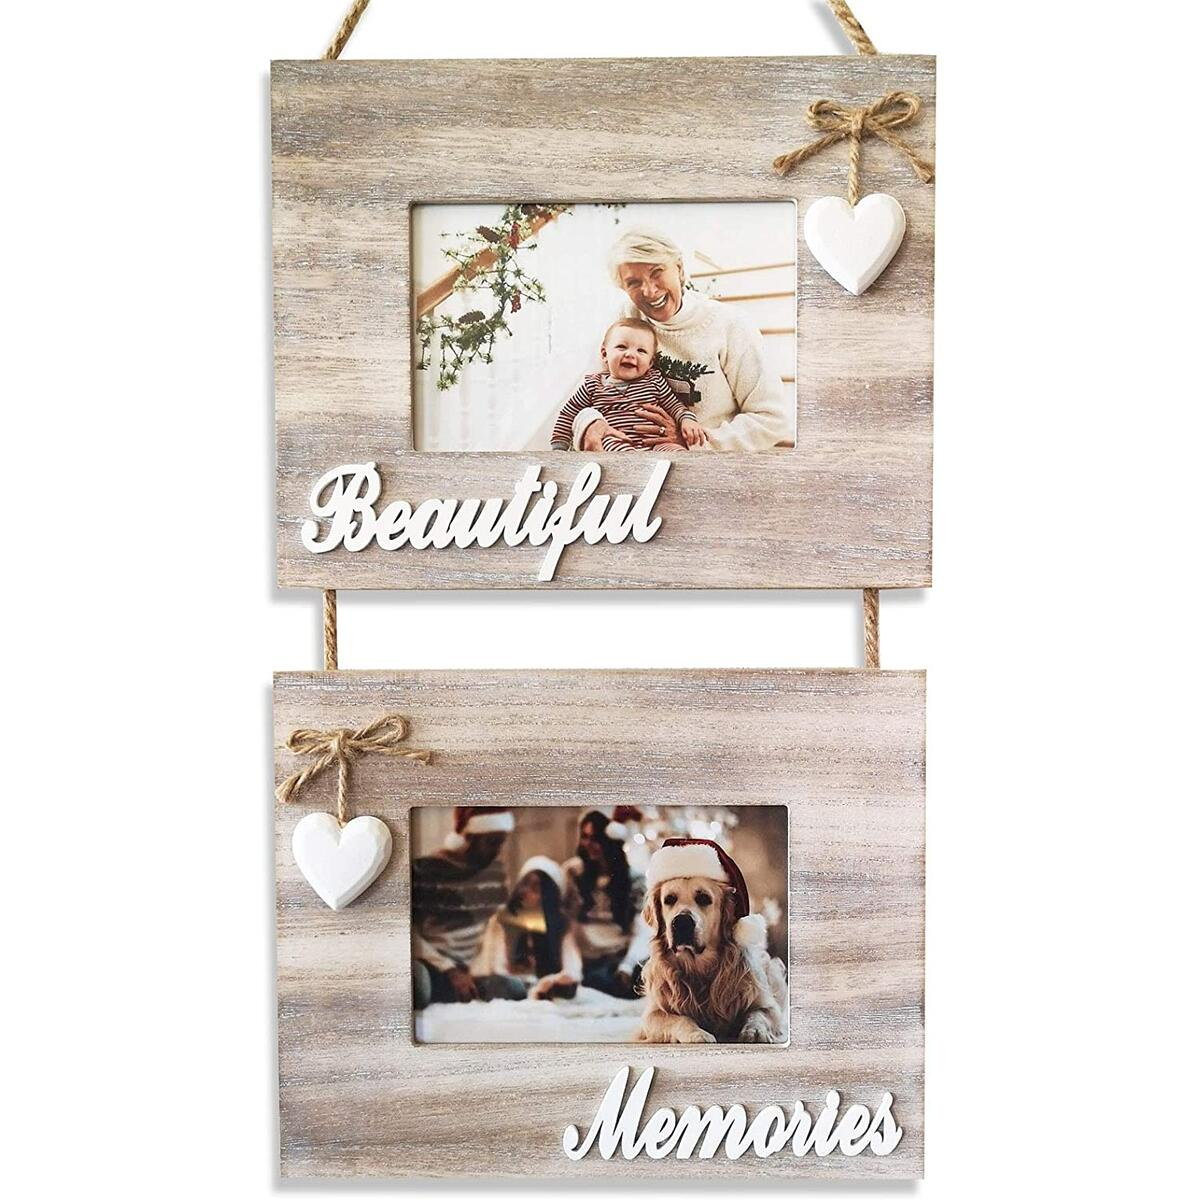 Beautiful Memories Rustic Double Hanging Picture Frame, 4x6 Decorative Photo Frame Collage, Shabby Chic Decor, White Wash Farmhouse Style Wood.